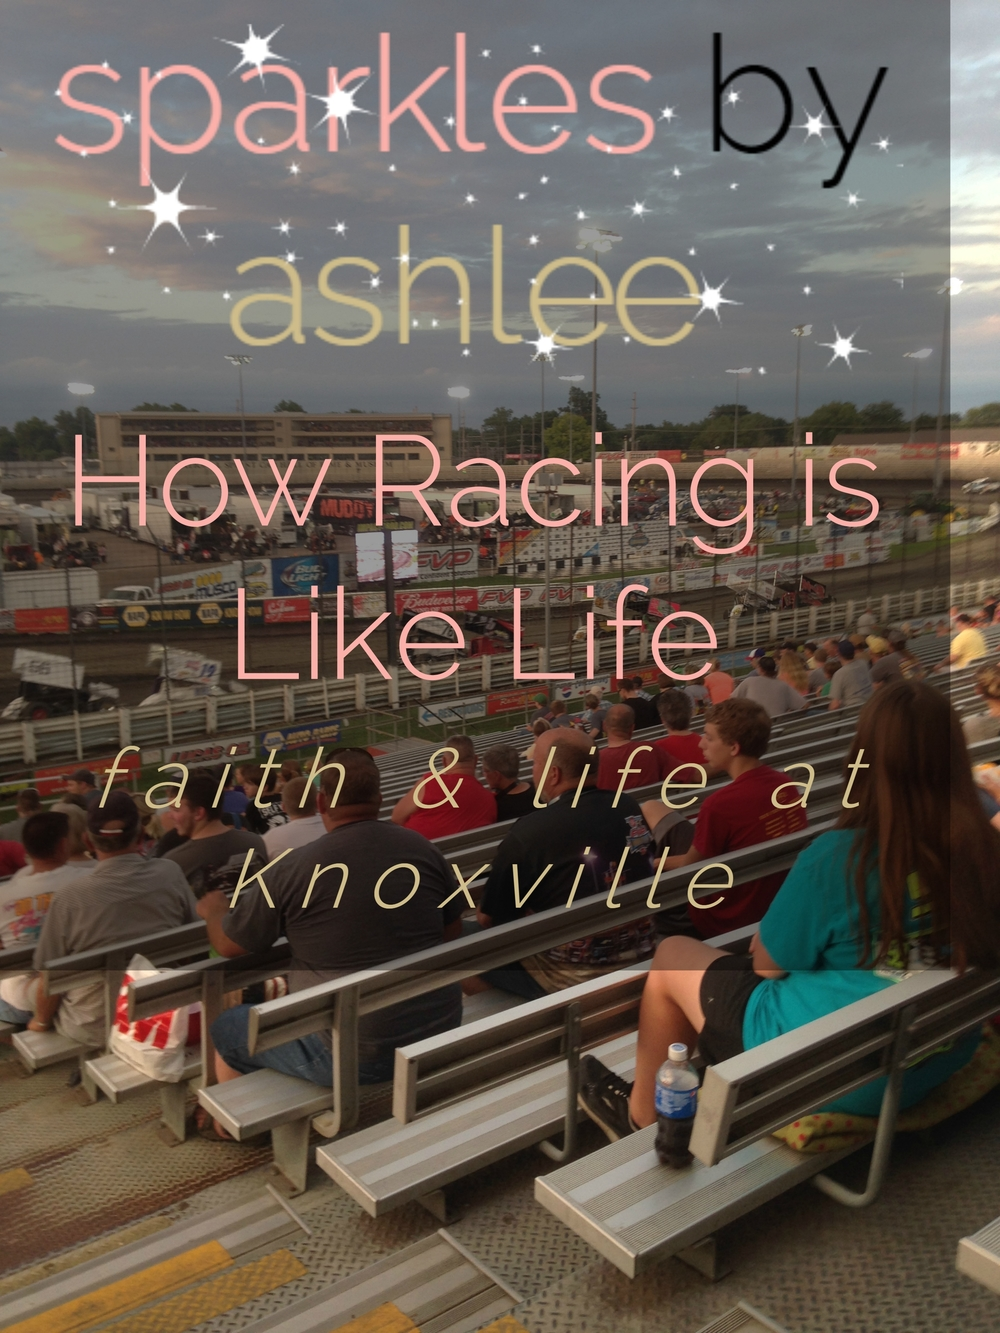 How-Racing-is-Like-Life-Sparkles-by-Ashlee.jpg